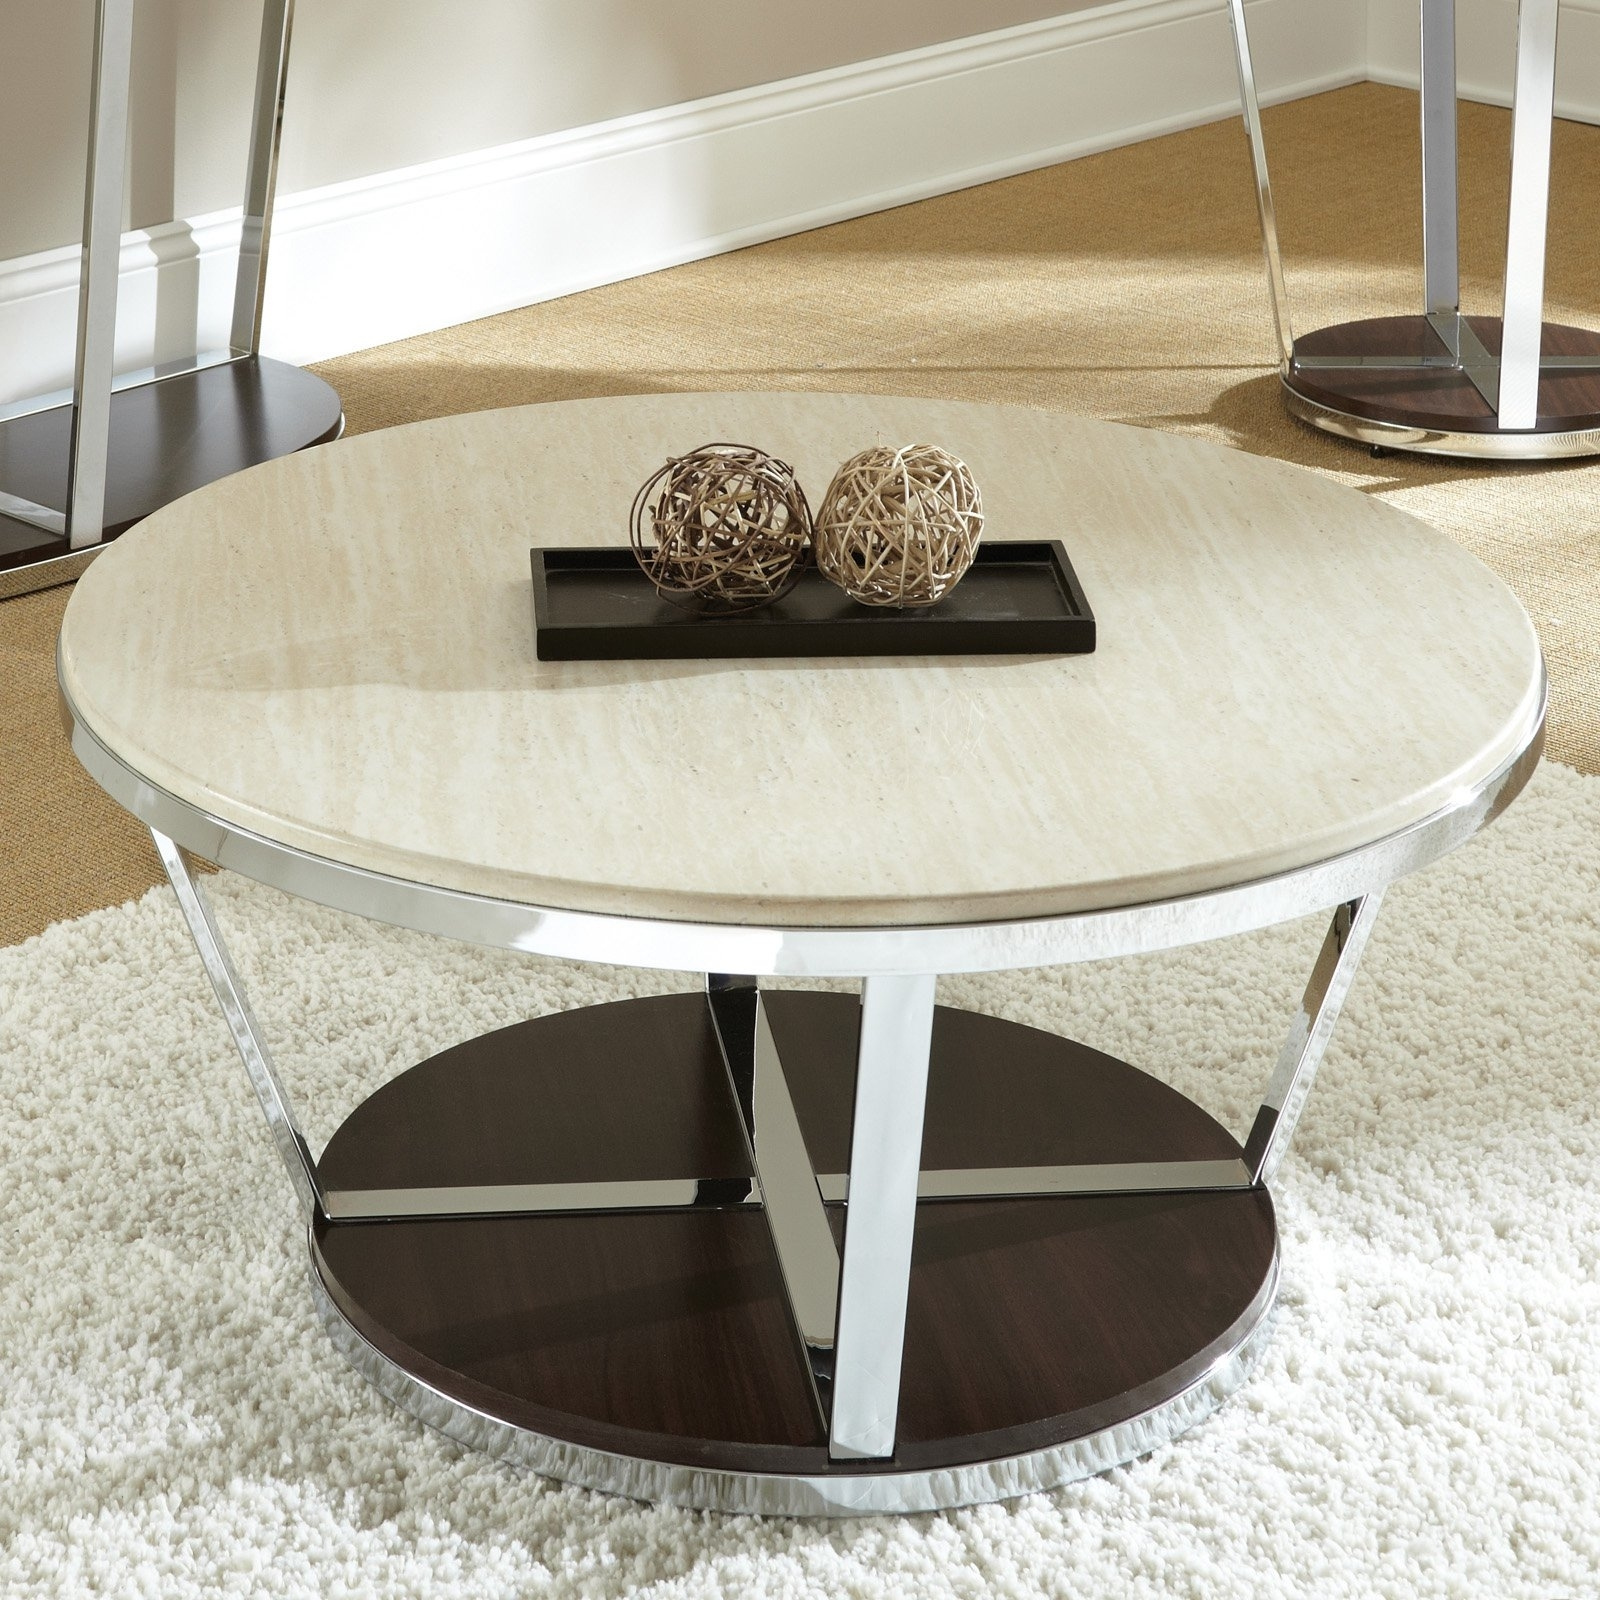 Marble Round Coffee Table | Furniture Design with Smart Round Marble Top Coffee Tables (Image 22 of 30)